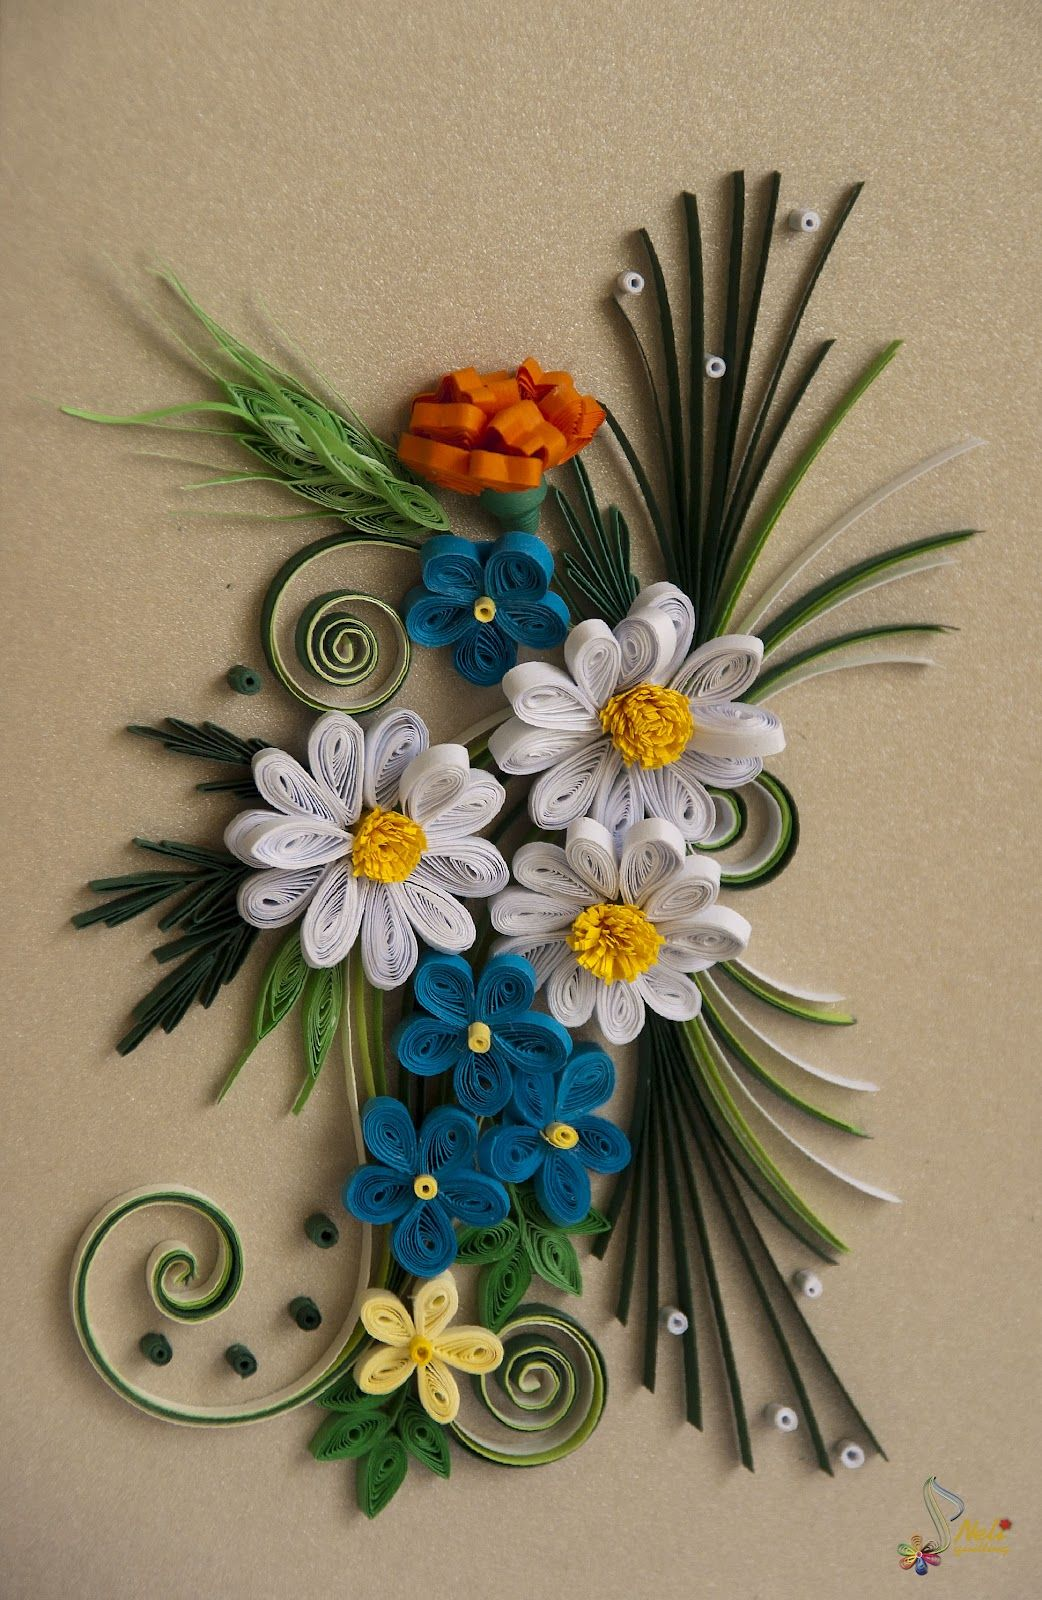 Neli quilling cards quilled flowers 2 pinterest neli for Quilling designs